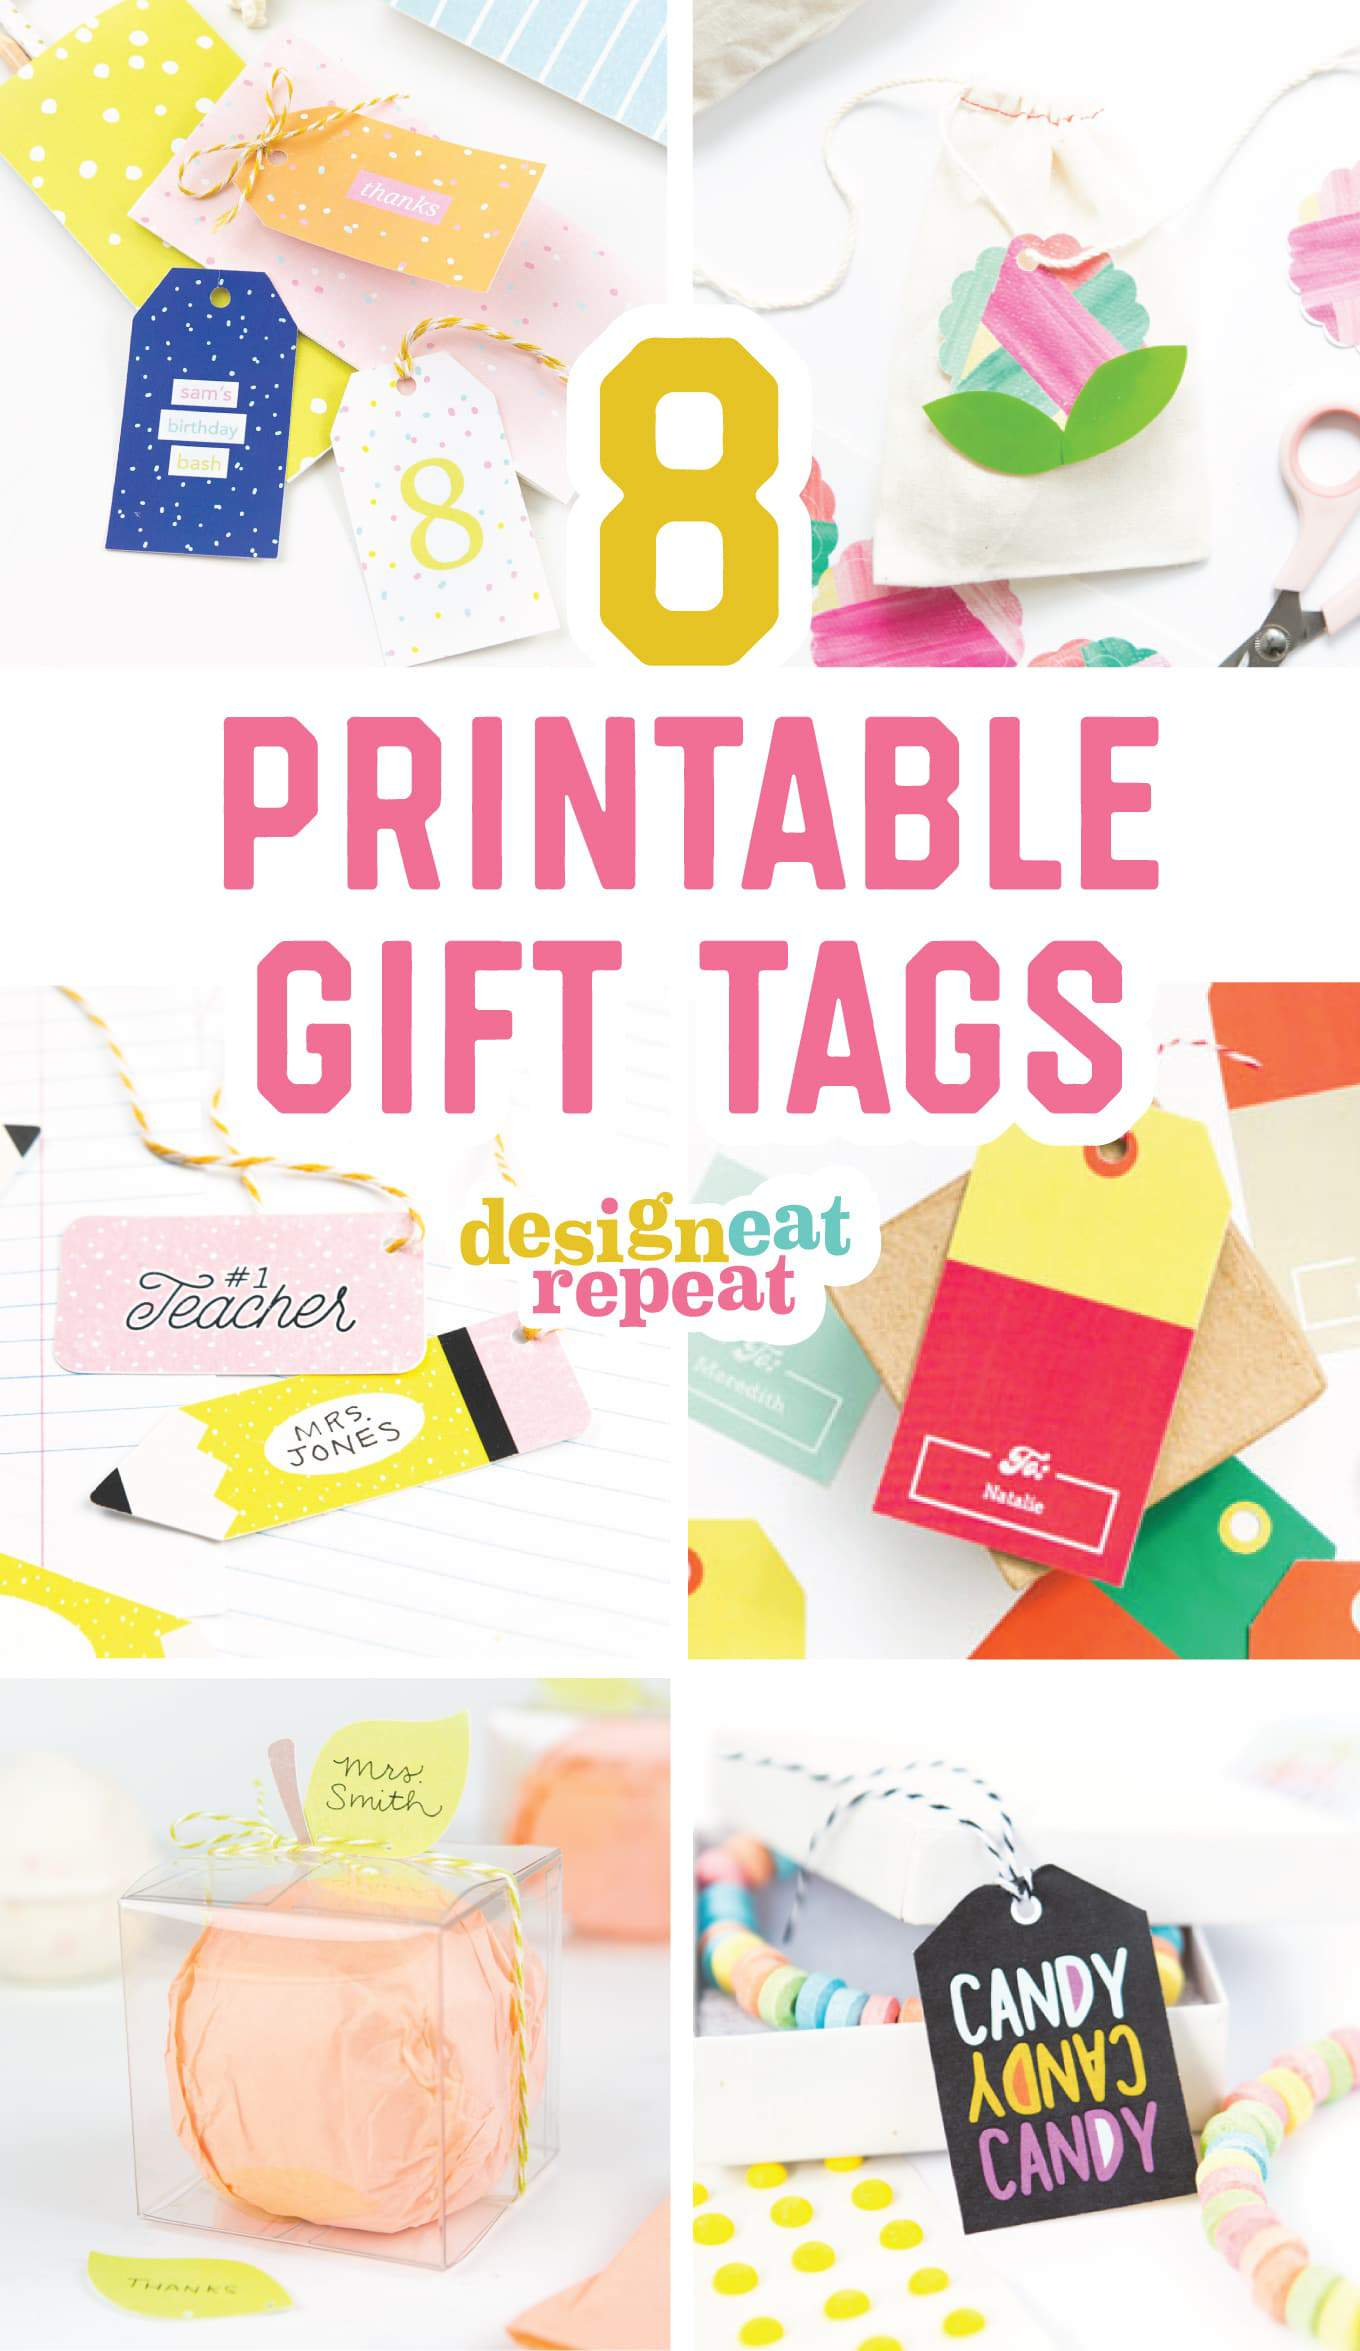 8 Colorful & Free Printable Gift Tags For Any Occasion! - Free Printable Goodie Bag Tags